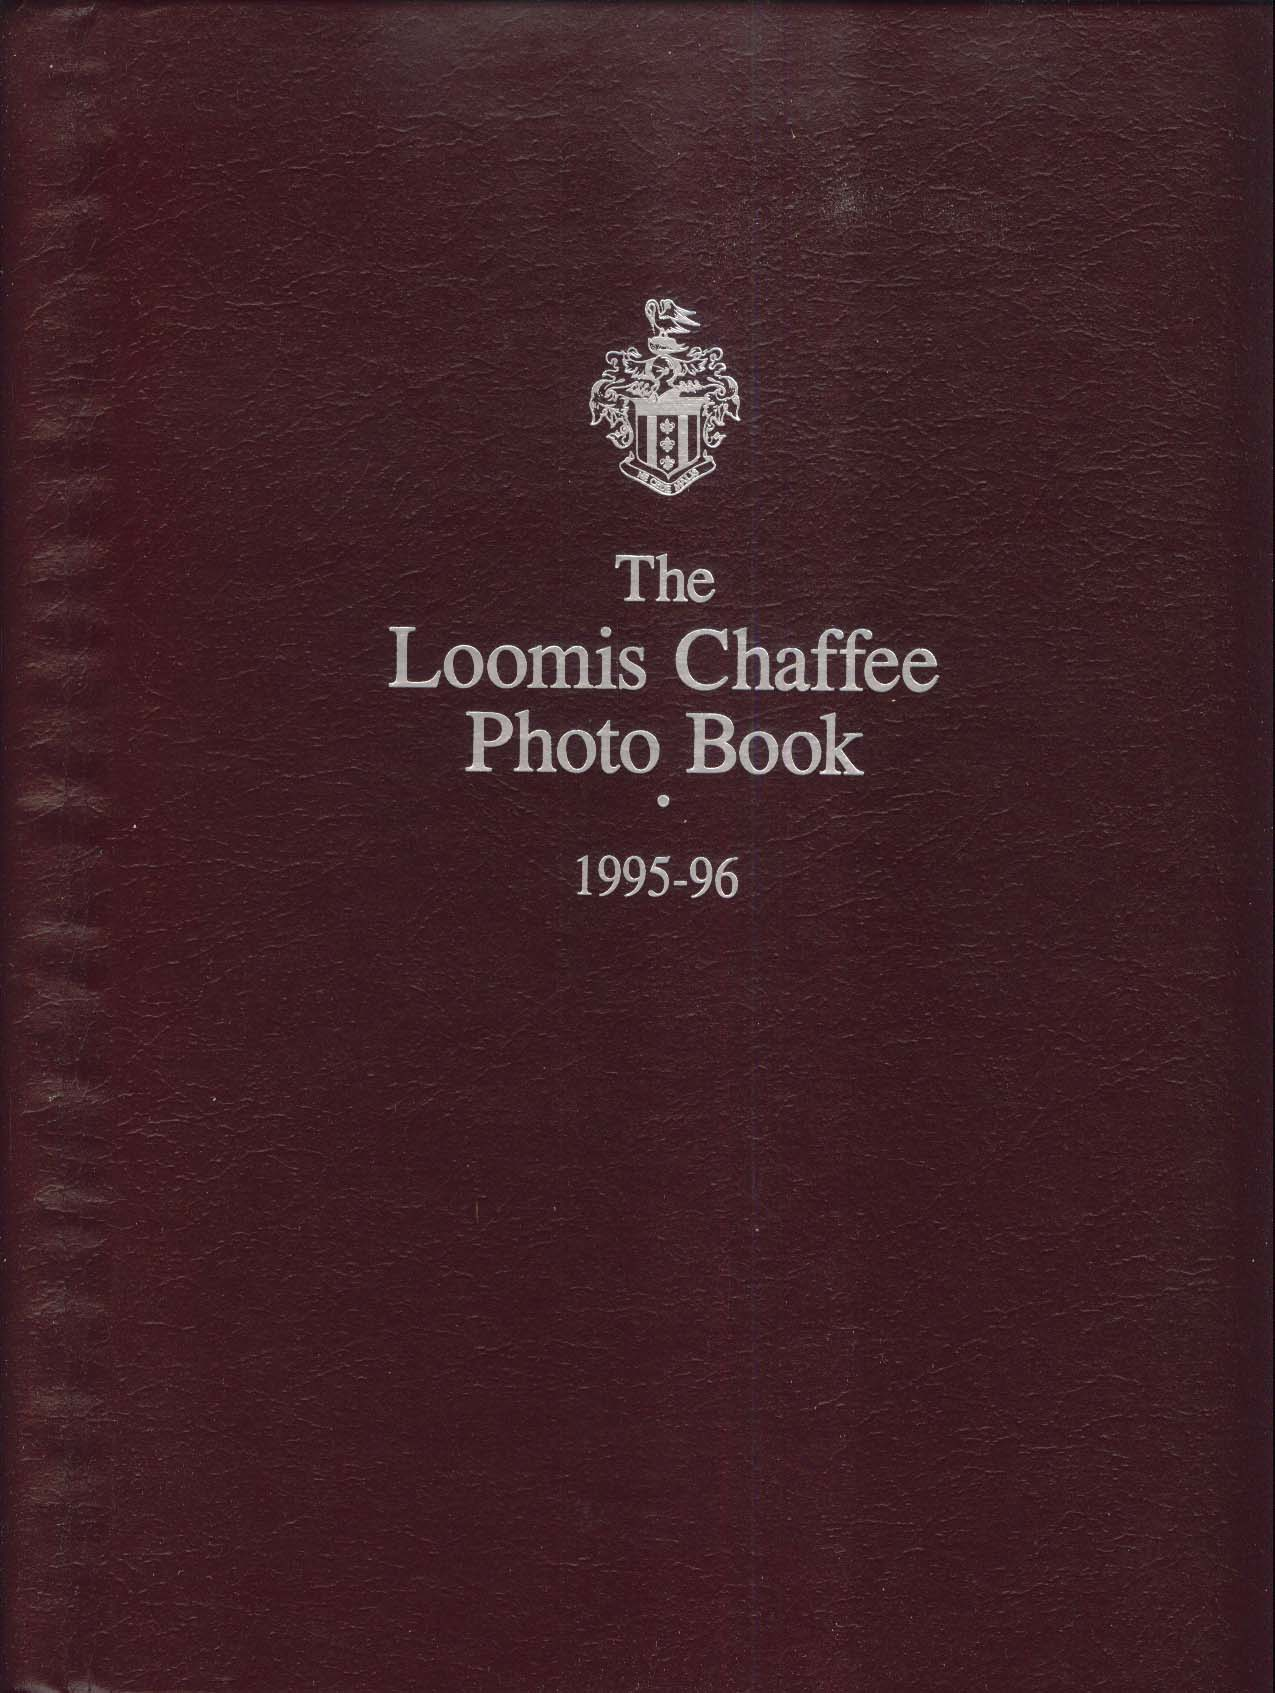 Image for Loomis Chaffee Photo Book 1995-1996 Windsor Connecticut CT